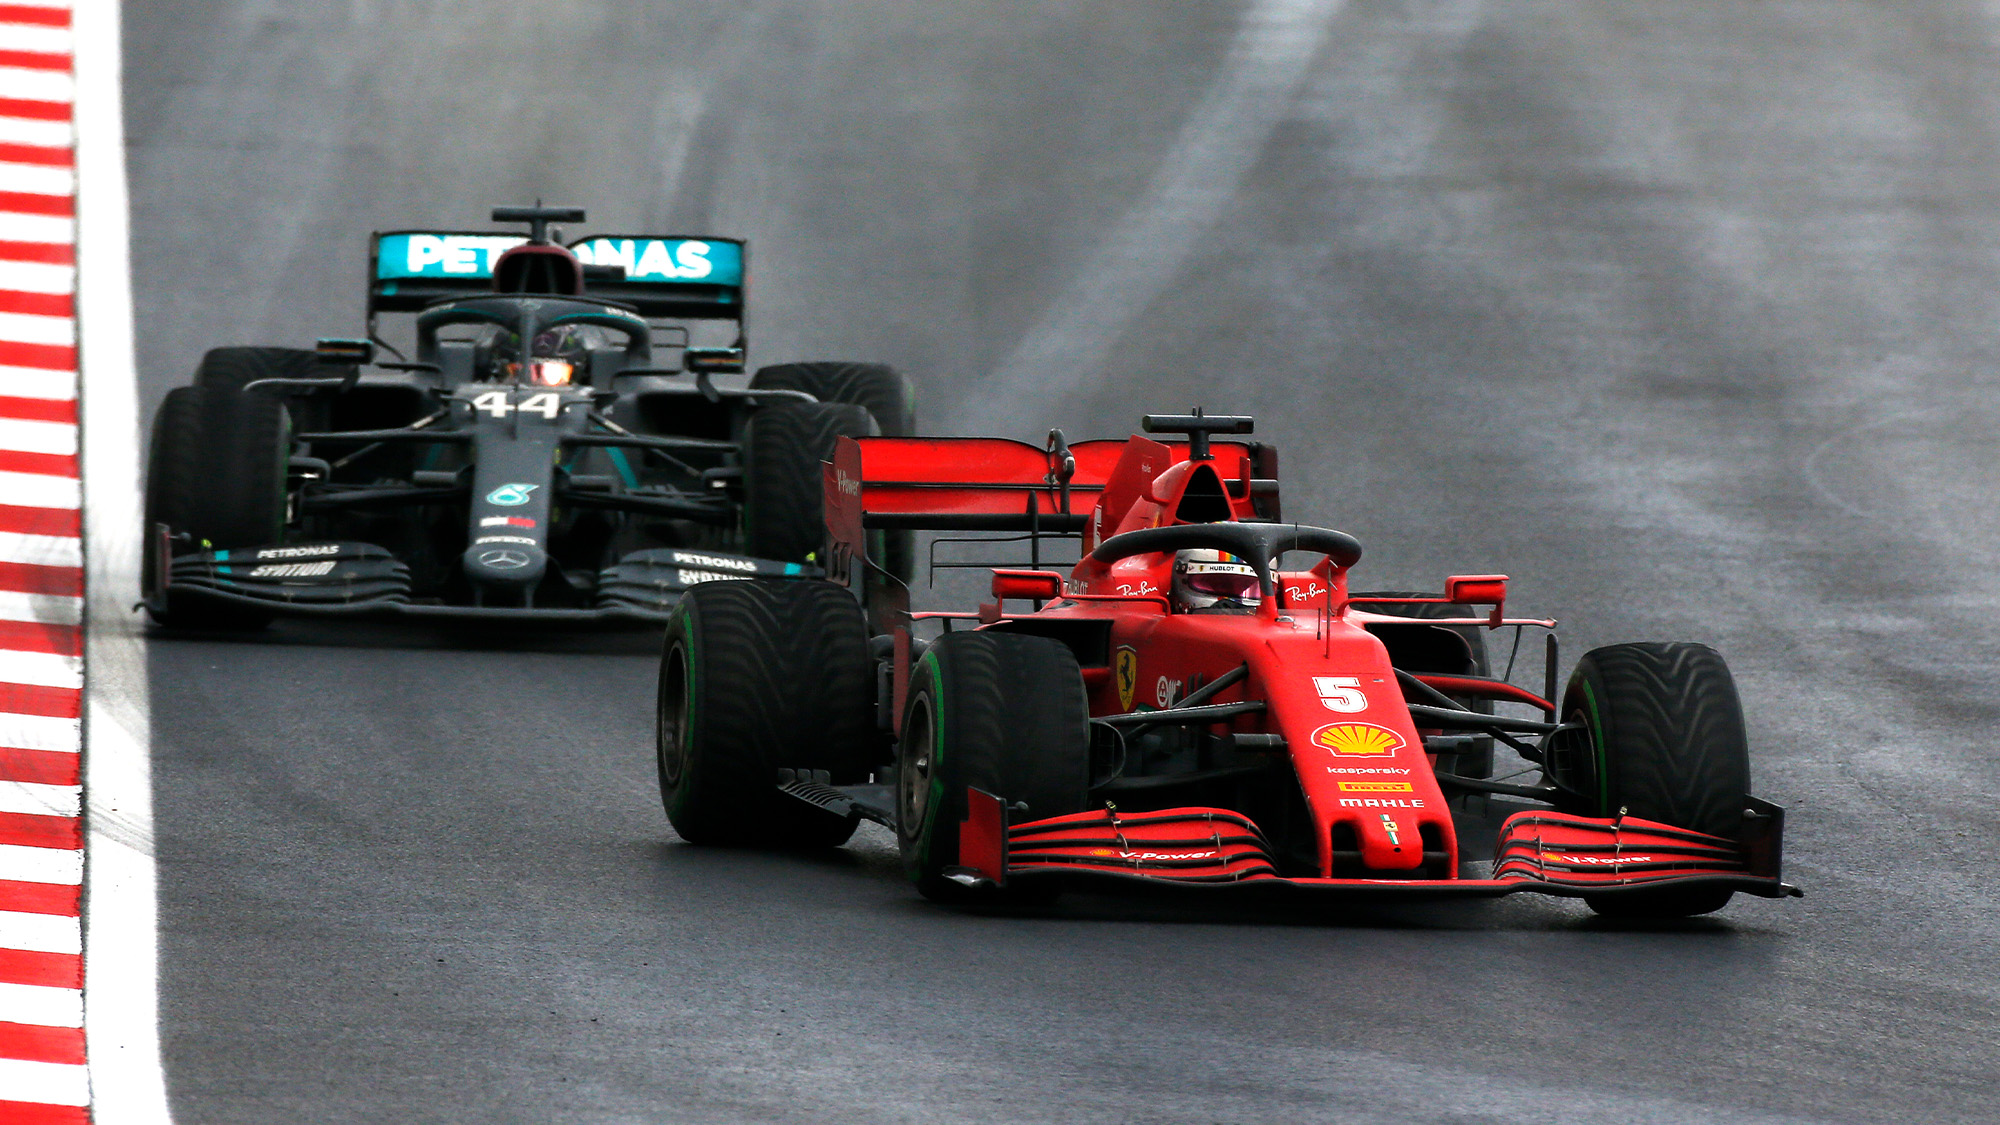 Lewis Hamilton's Mercedes follows the Ferrari of Sebastian Vettel at Istanbul PArk in the 2020 F1 Turkish Grand Prix